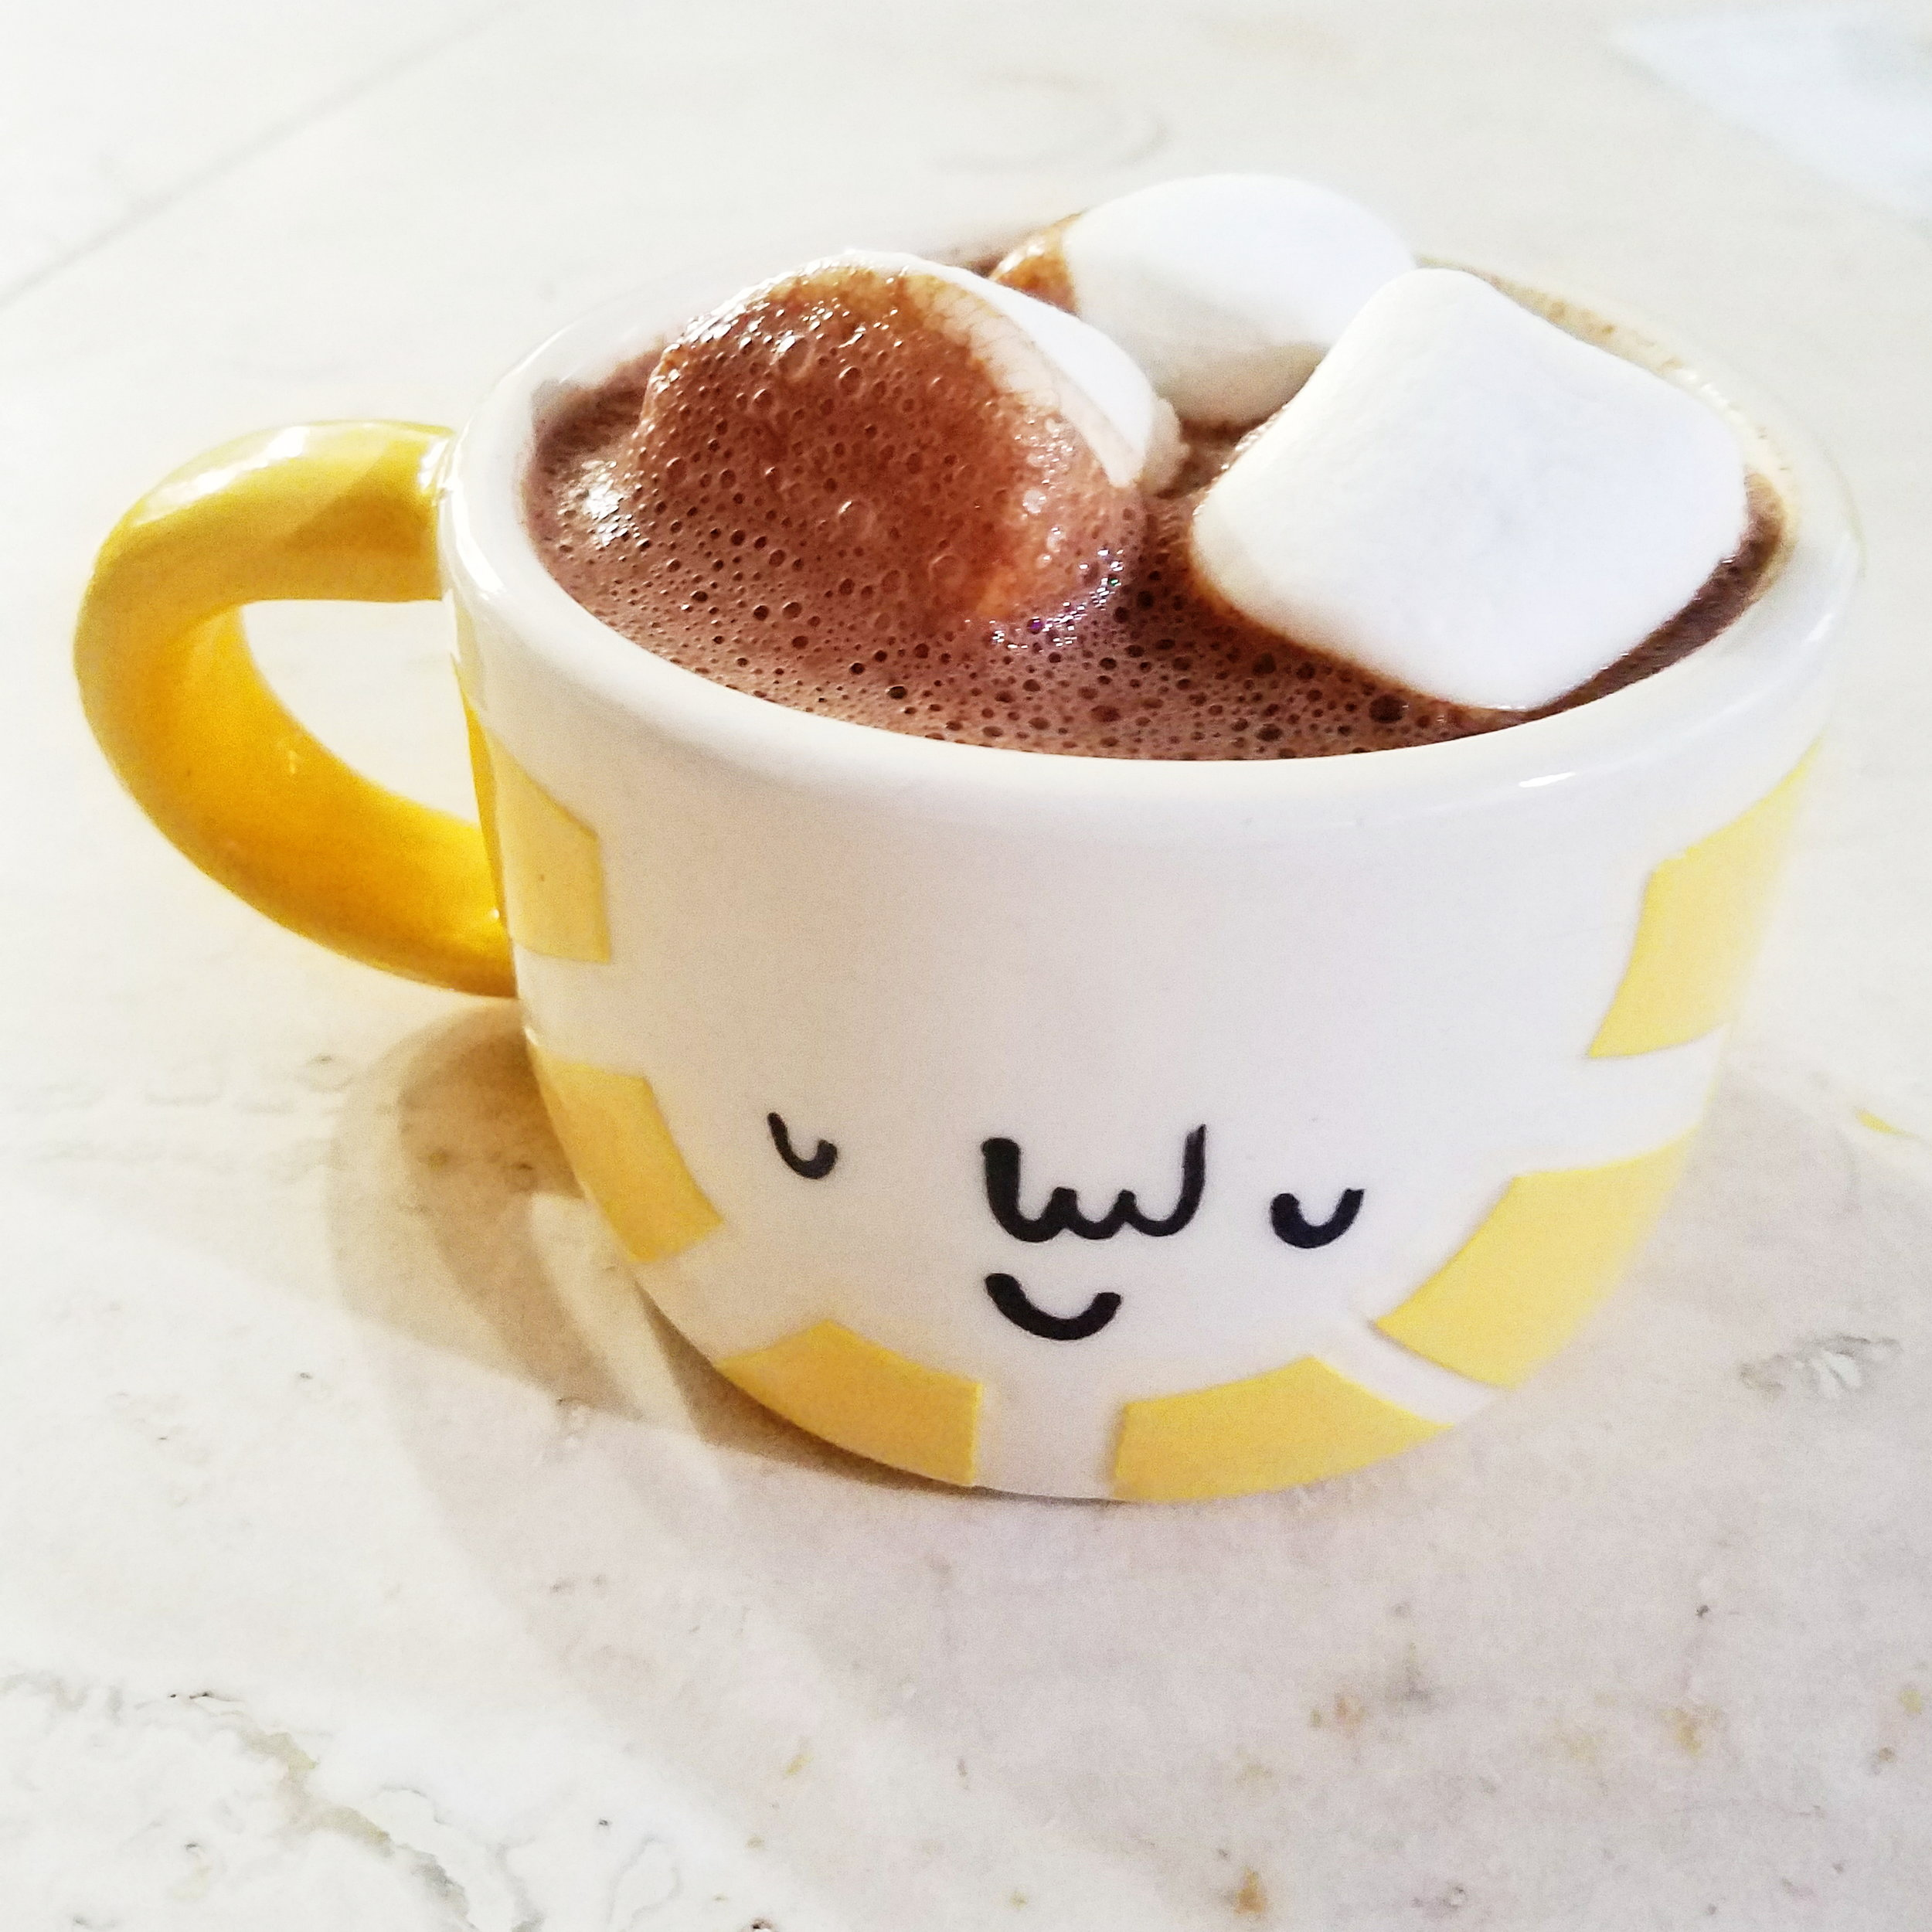 Nothing like a mug of hot chocolate - including a liberal application of marshmallows - to warm you up after a rainy hike!